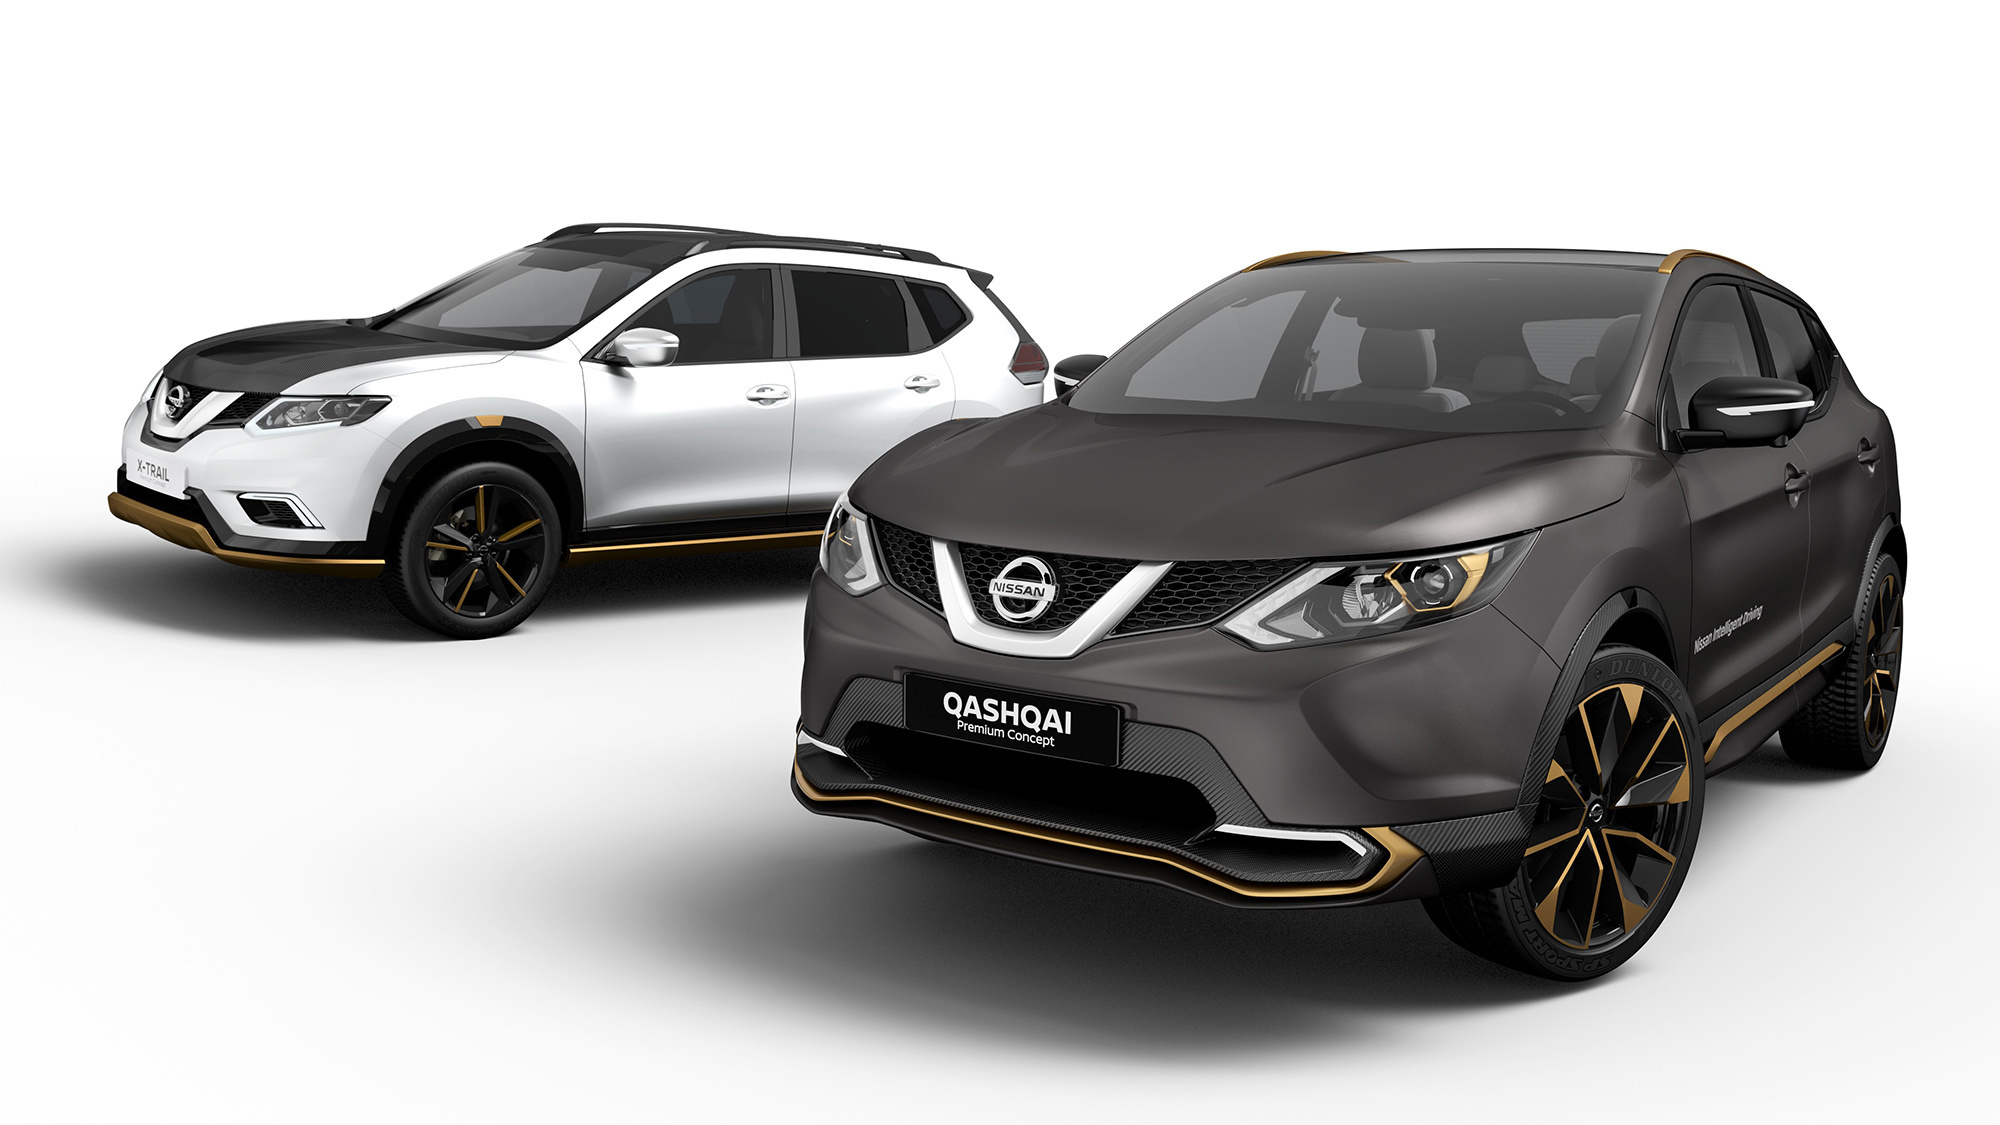 nissan qashqai 2017 wallpapers images photos pictures backgrounds. Black Bedroom Furniture Sets. Home Design Ideas